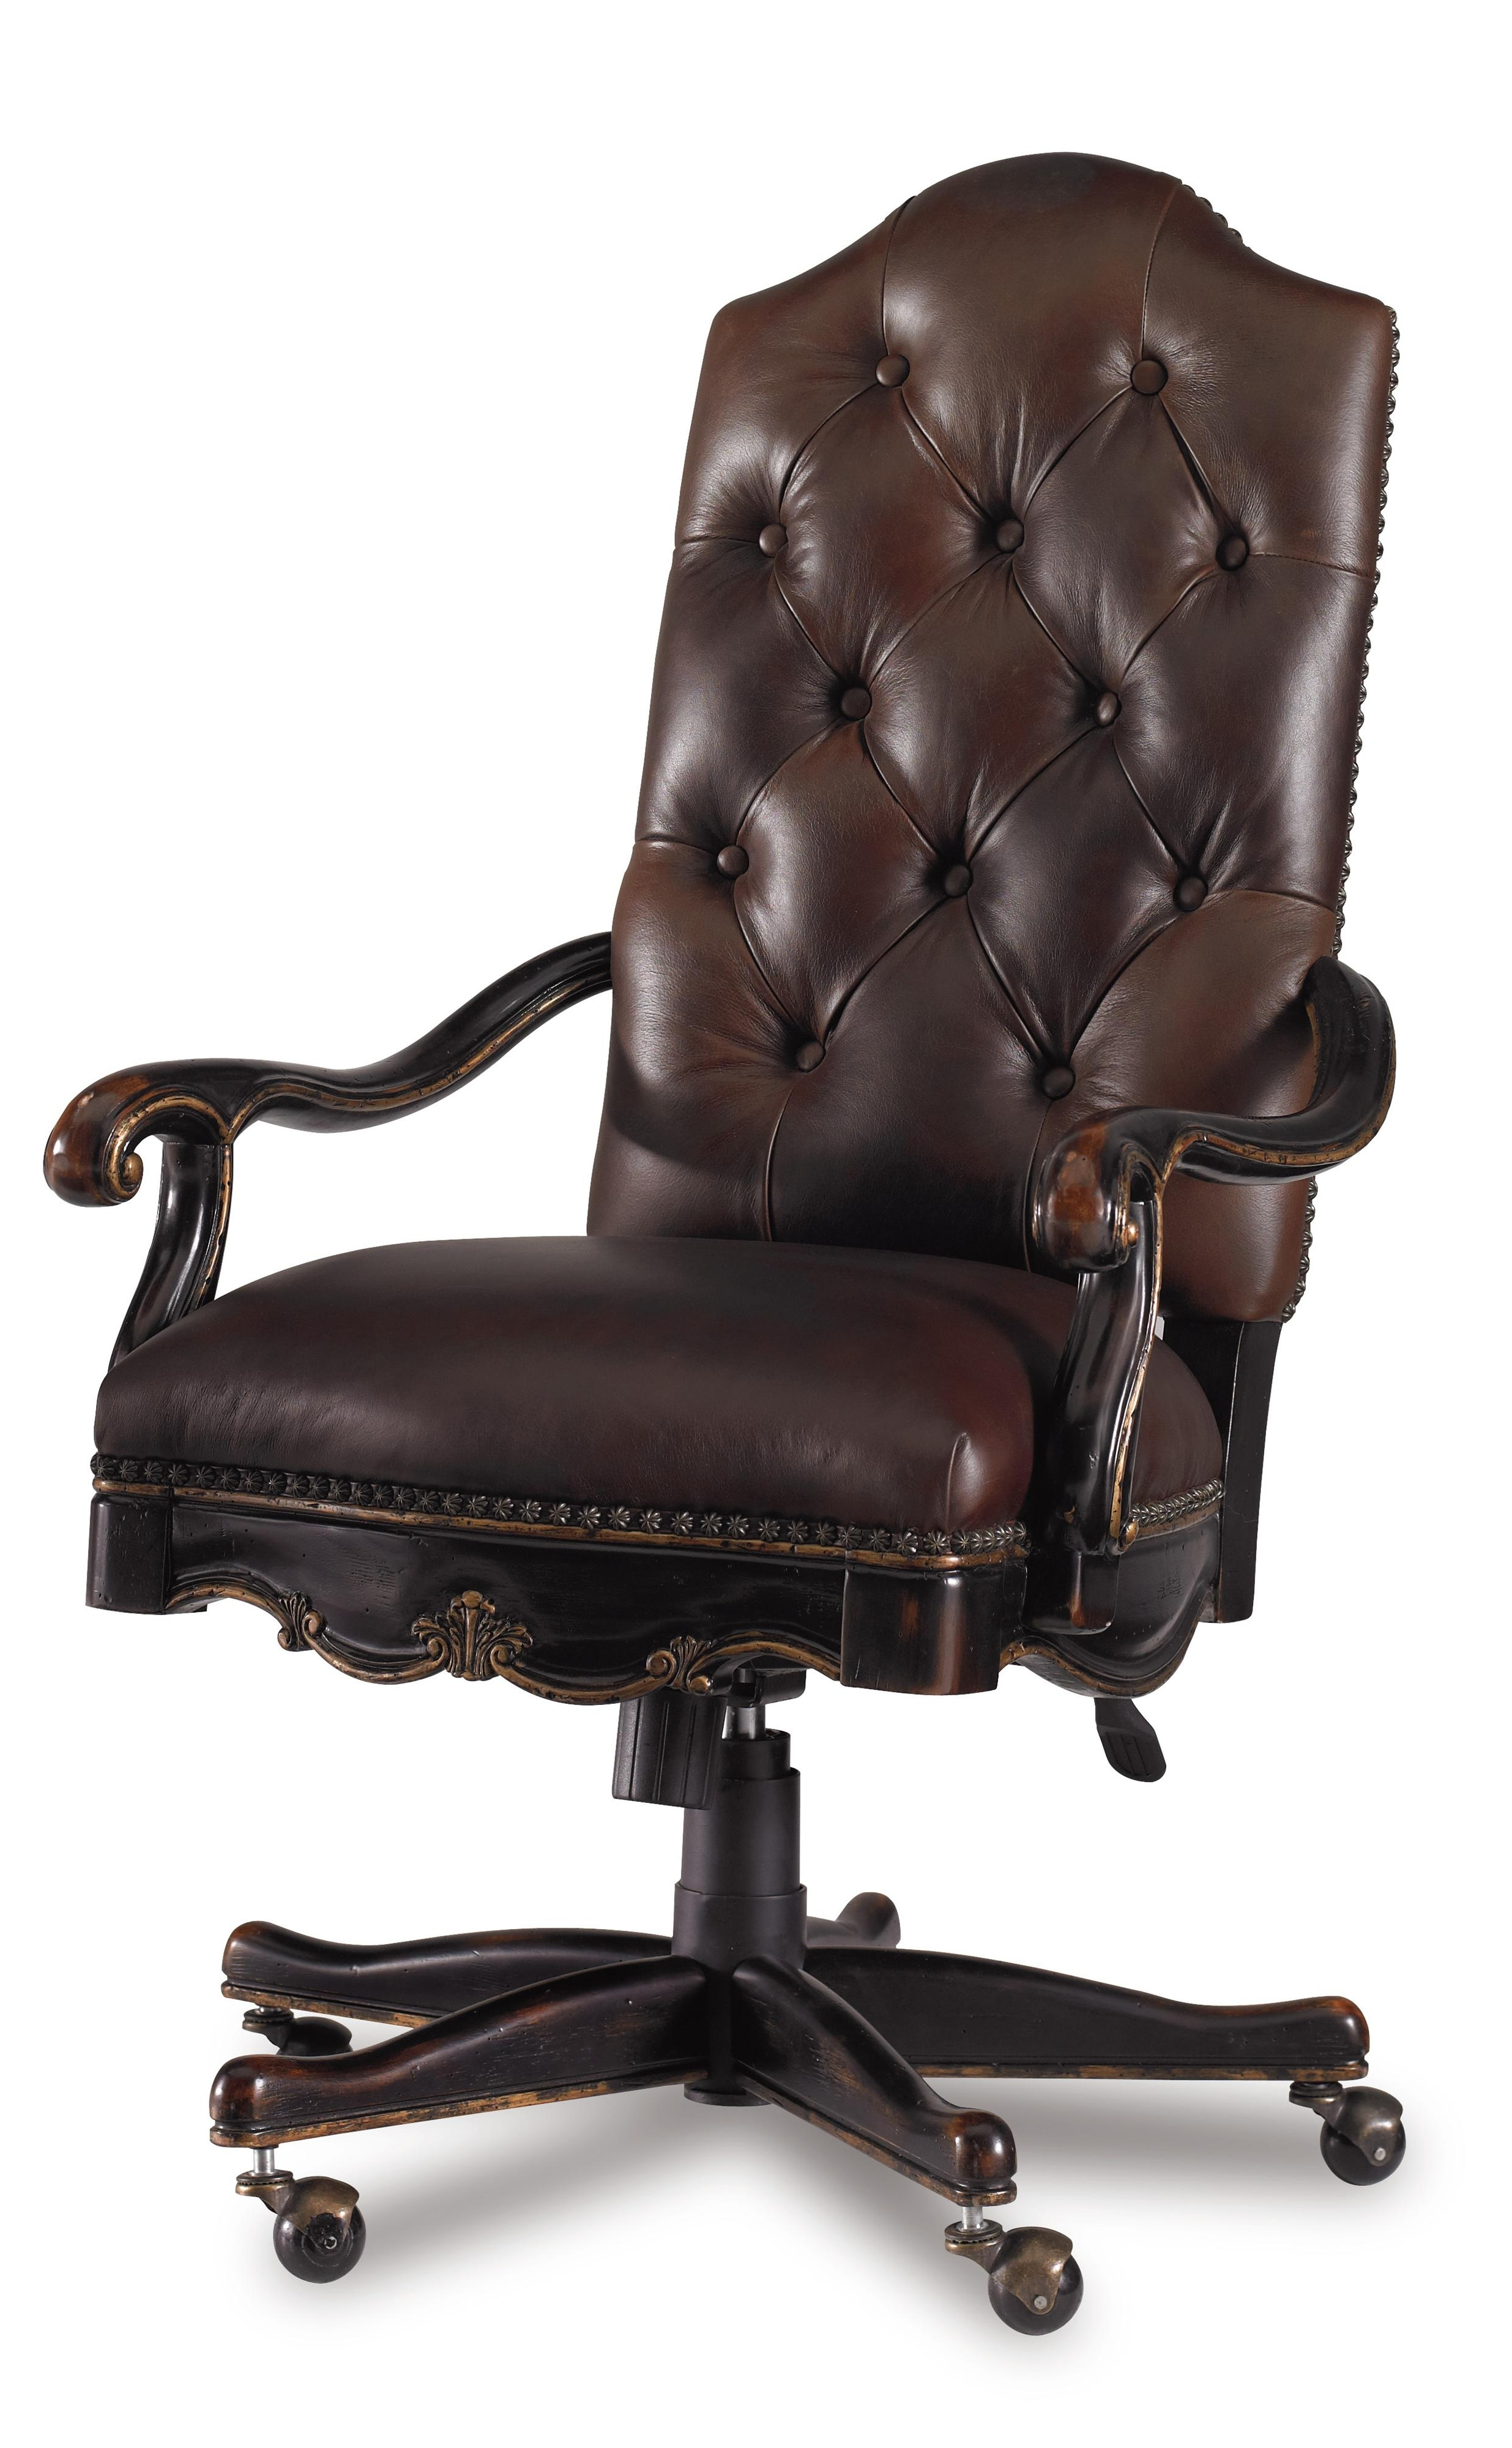 Hooker Furniture Grandover Tufted Leather Executive Office Chair Within 2019 Executive Office Swivel Chairs (View 3 of 20)